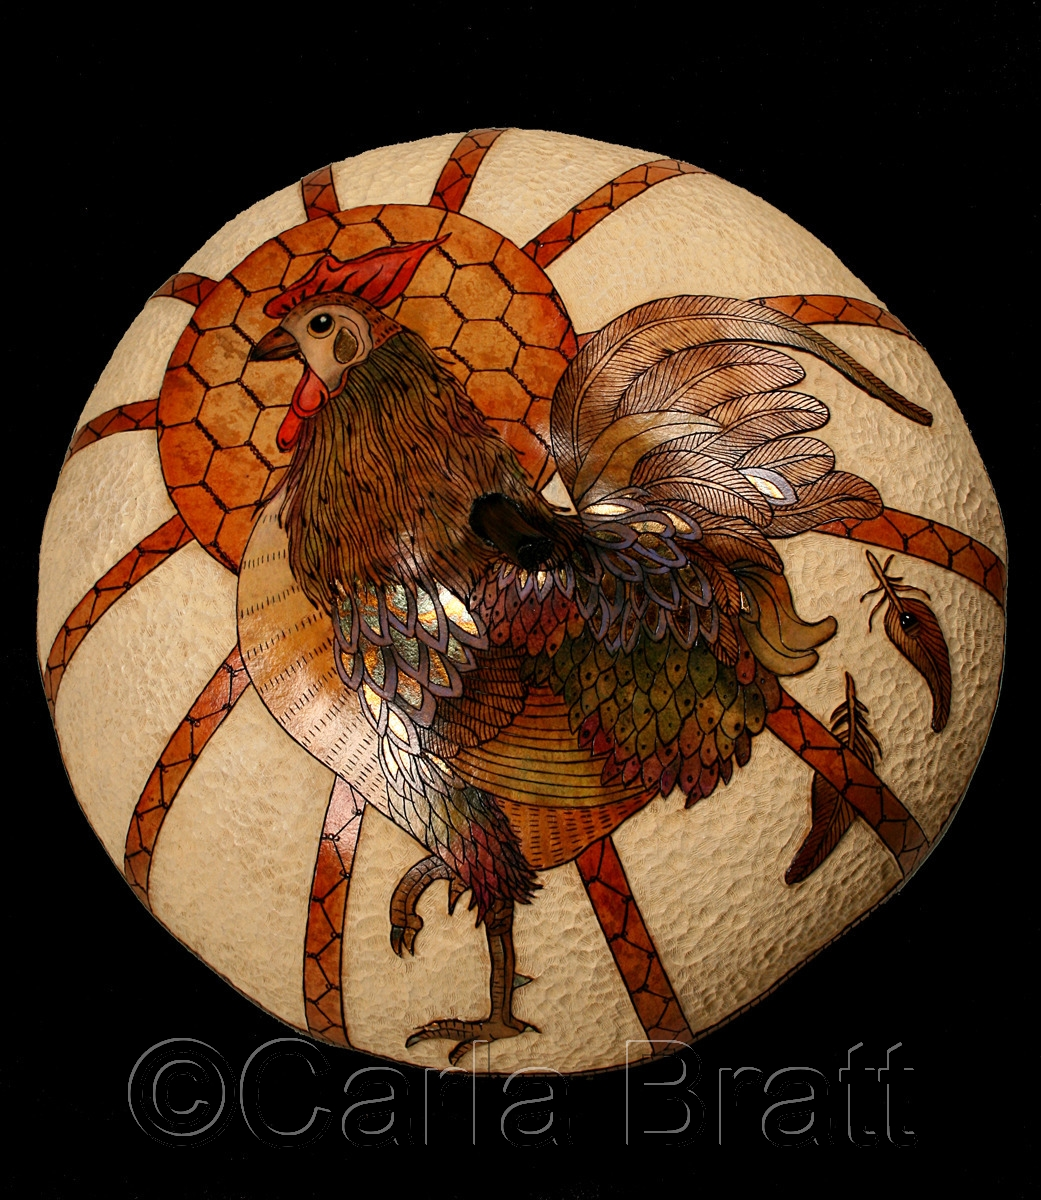 Large, fine art gourd with rooster, sun and chicken wire design. It is wood burned, carved & hand painted with blues, browns, oranges, reds, purple, greens & accent black . By gourd artist & printmaker, Carla Bratt (large view)